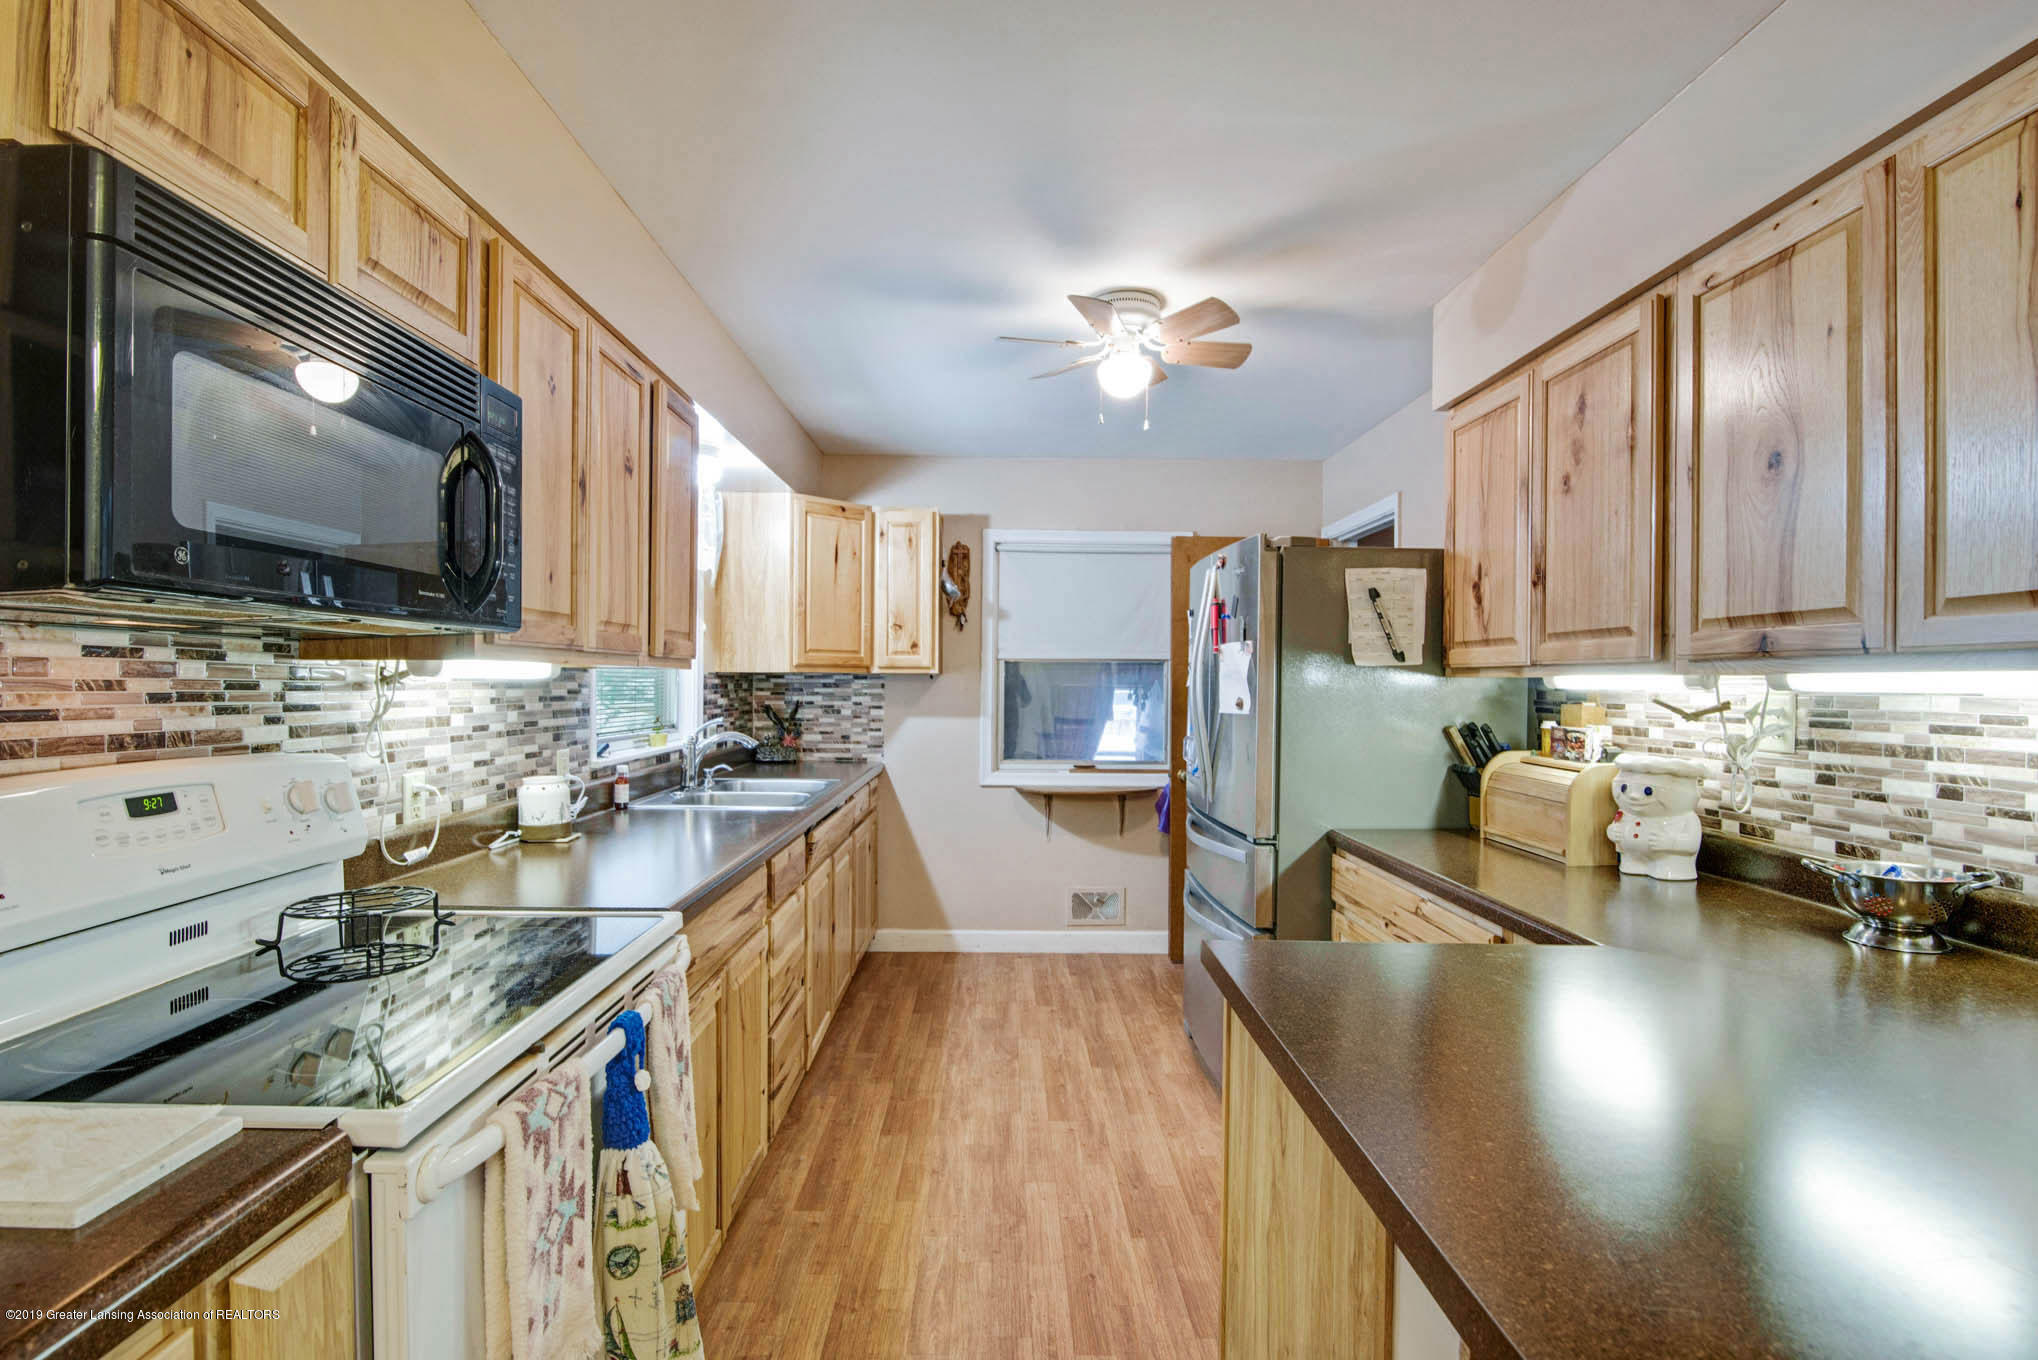 4615 Devonshire Ave - 6 - 5